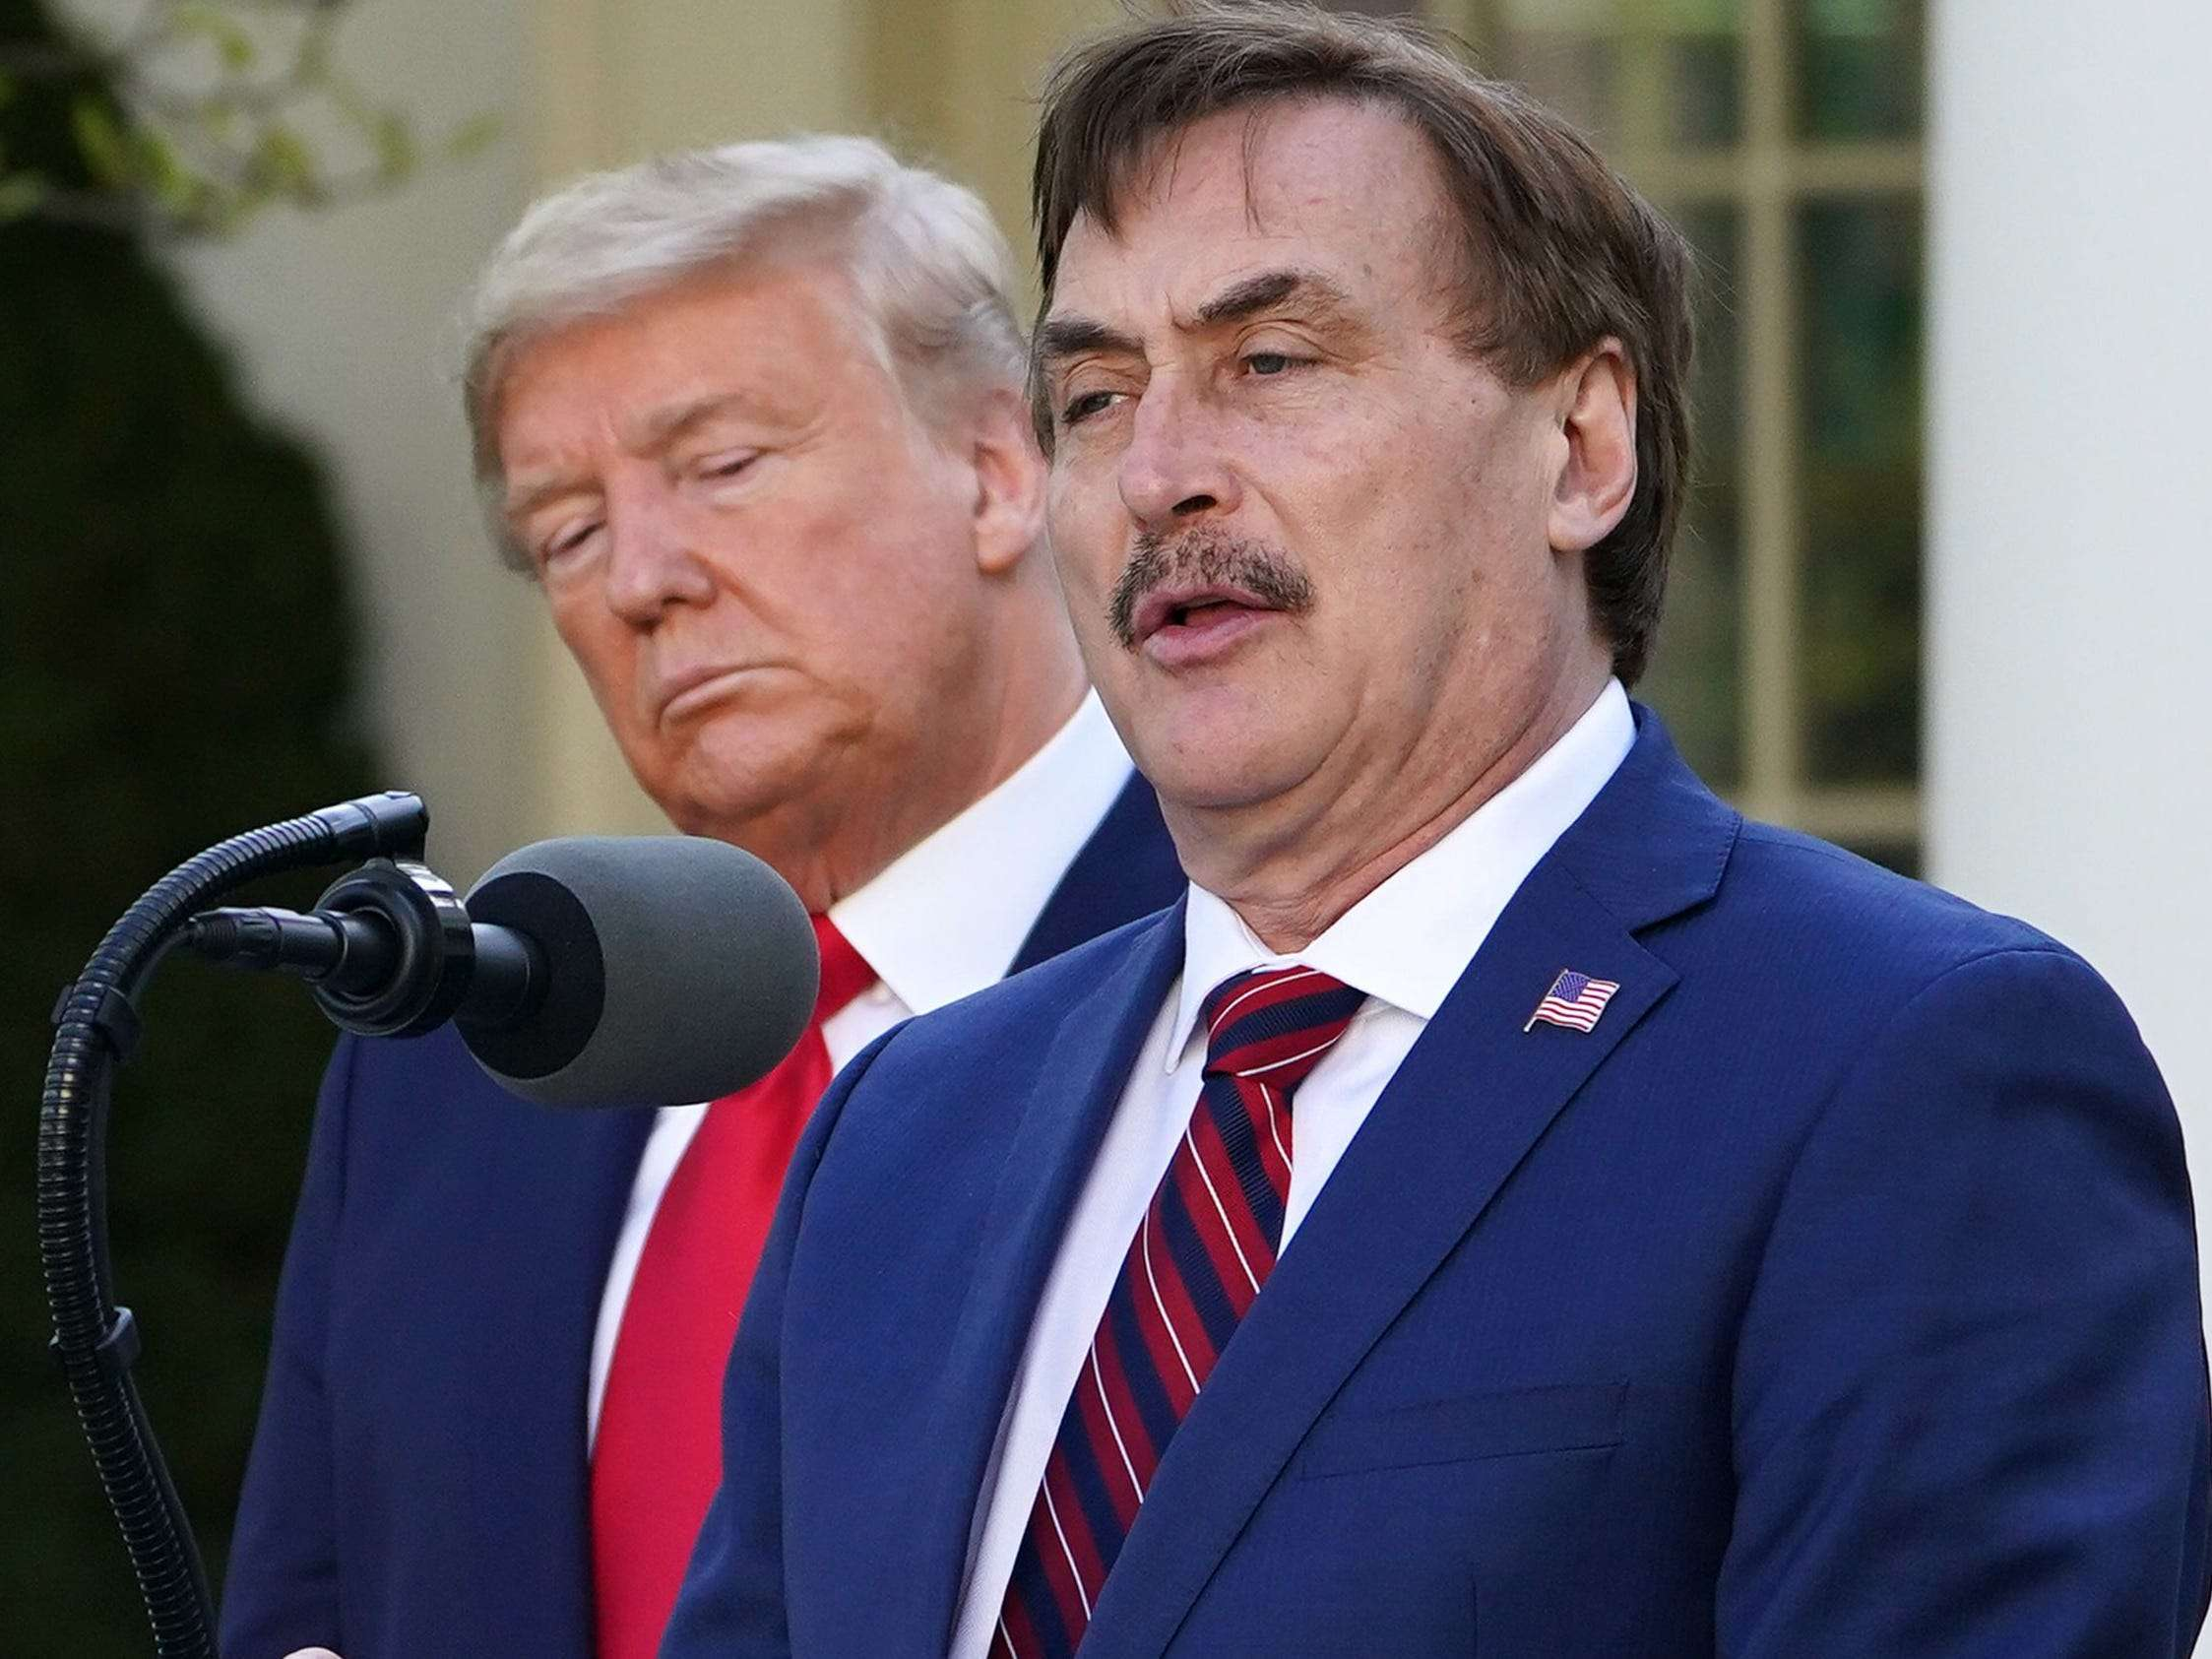 A judge ruled that MyPillow CEO Mike Lindell could keep his